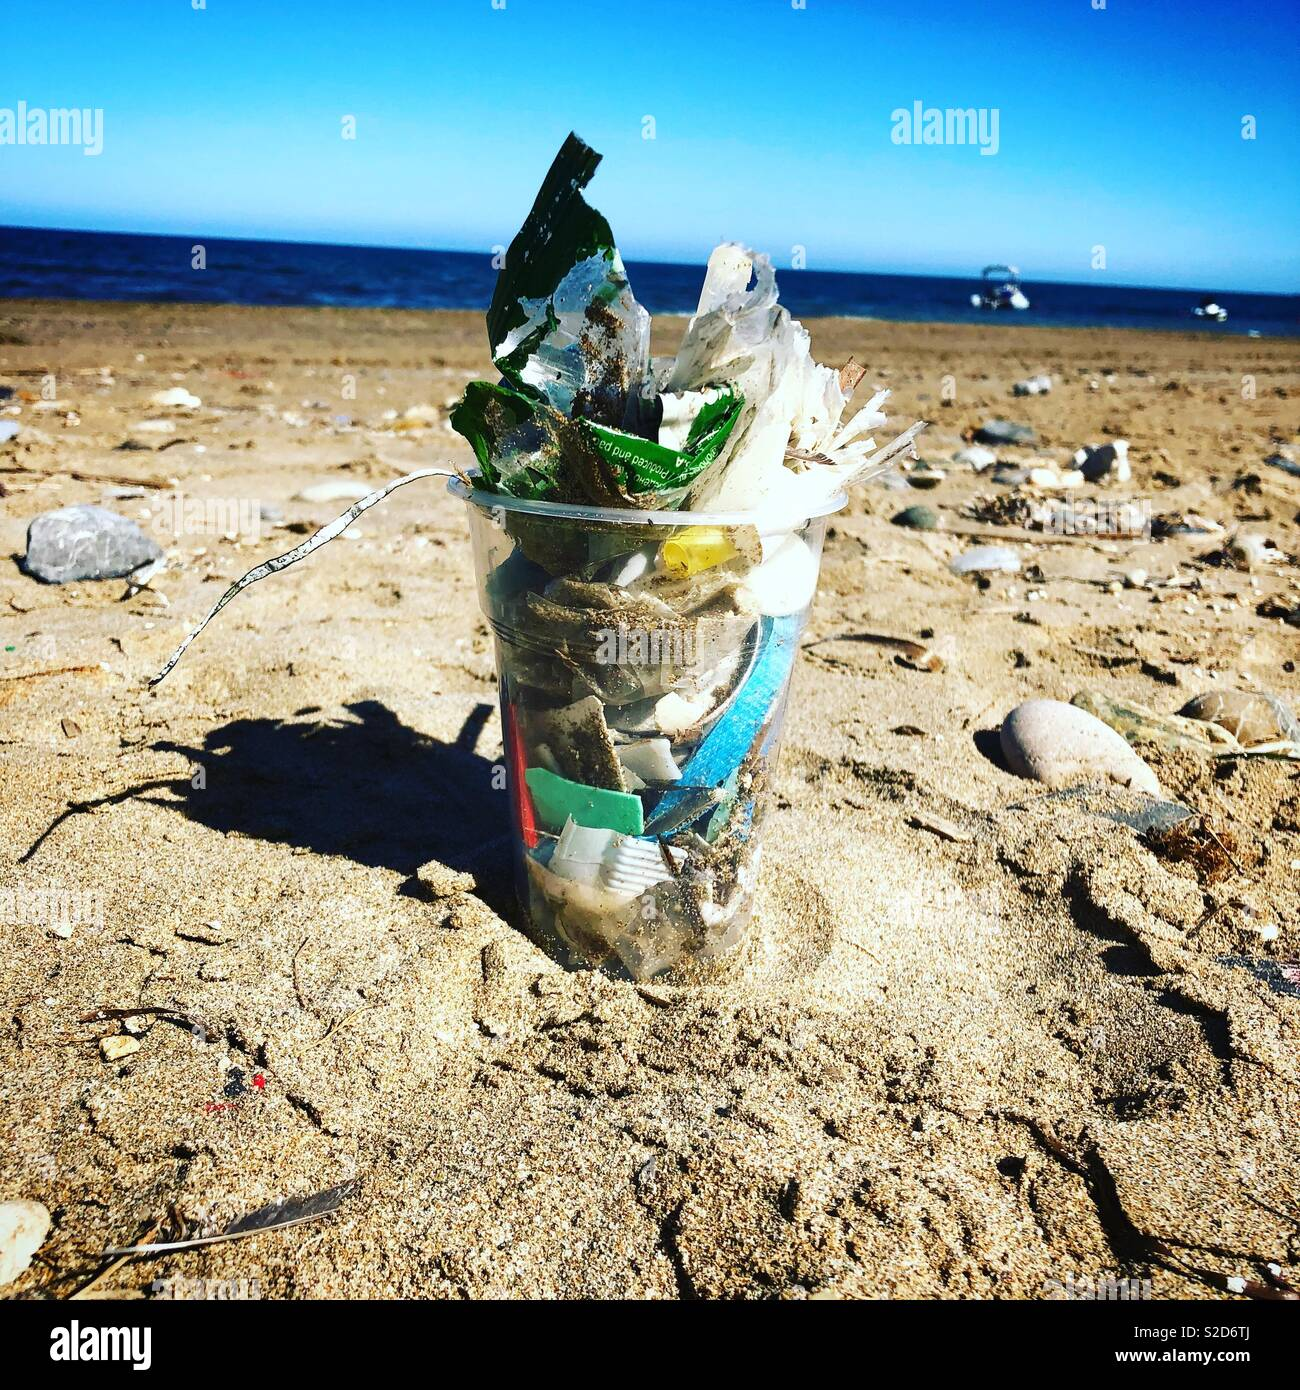 Plastic half pint cup filled with small plastics collected along a beach in Crete, Greece - Stock Image